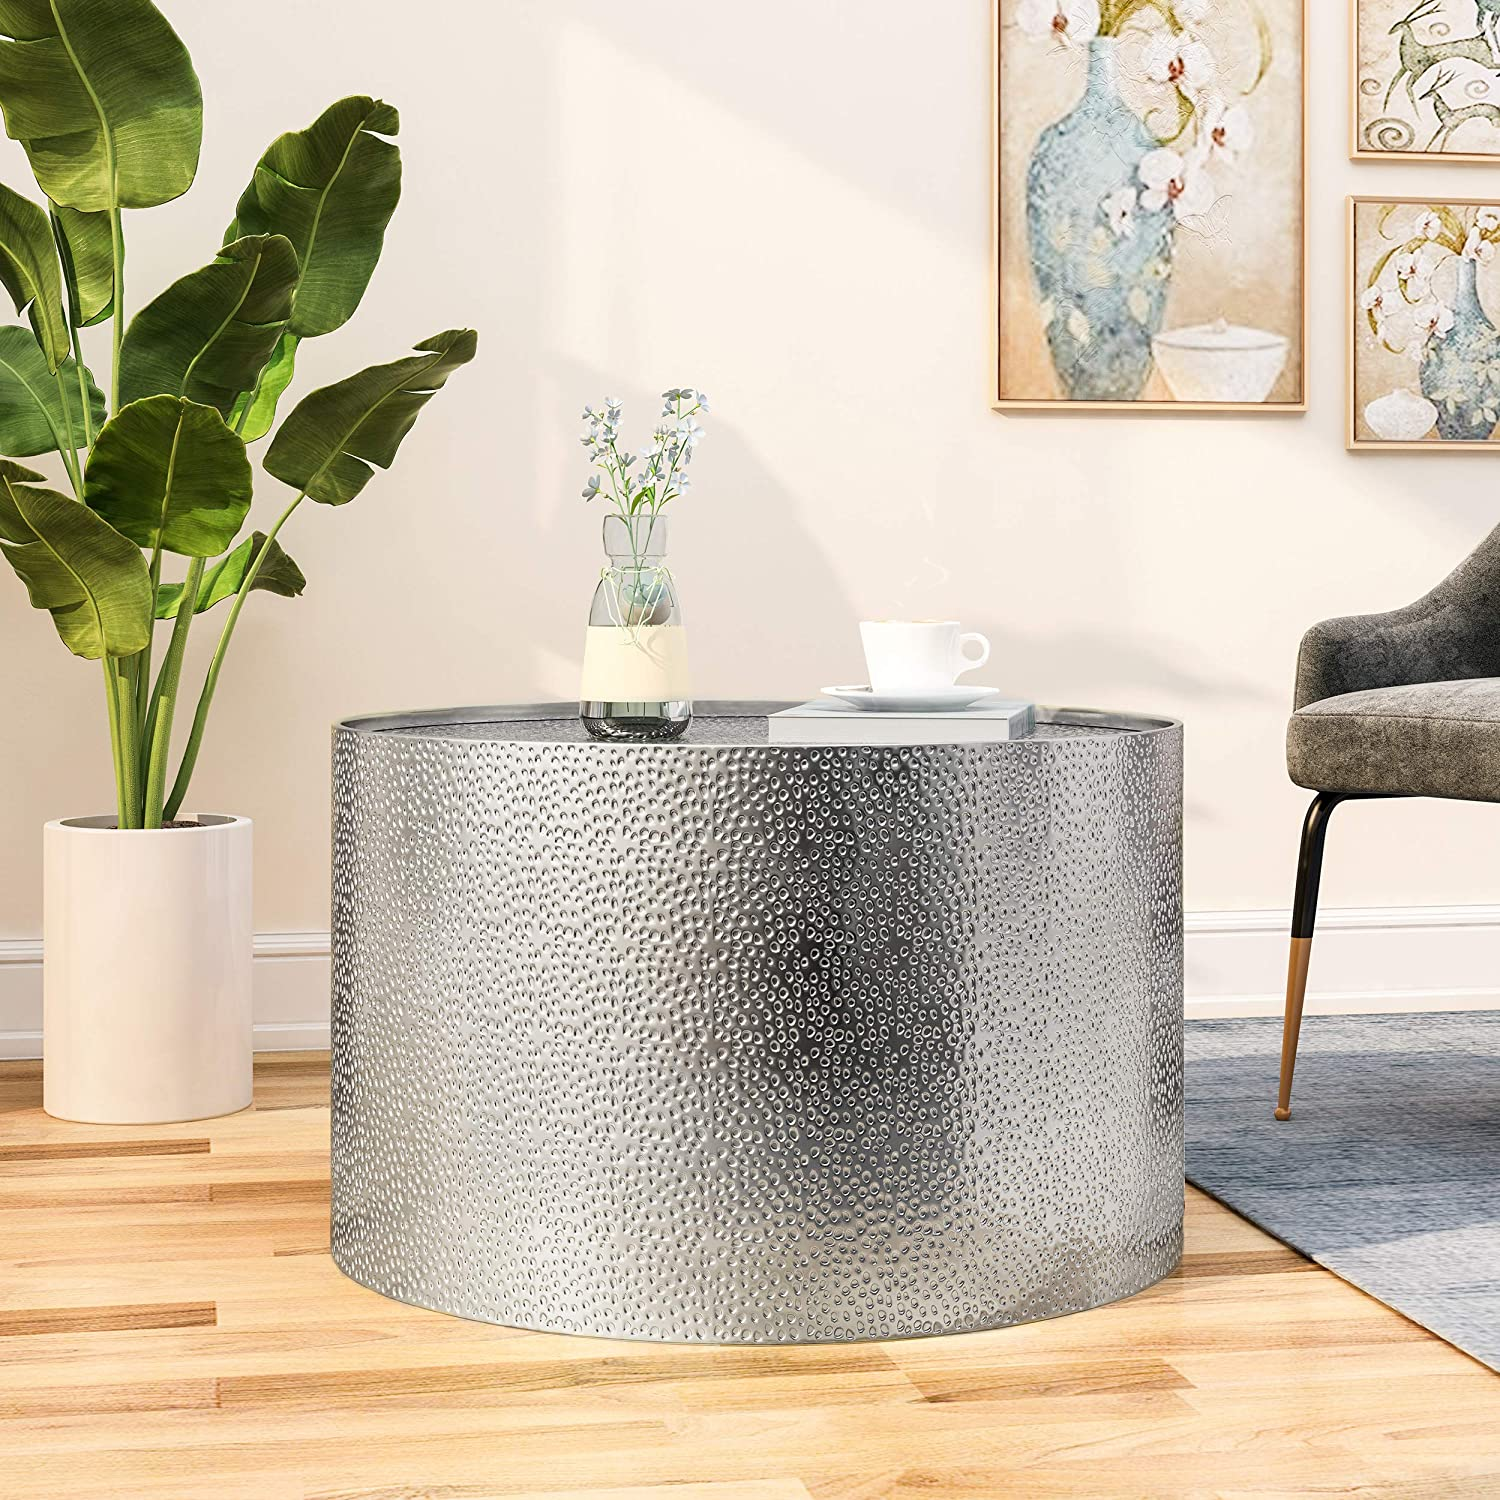 7. Christopher Knight Home Round Coffee Table – Best for Modern Look